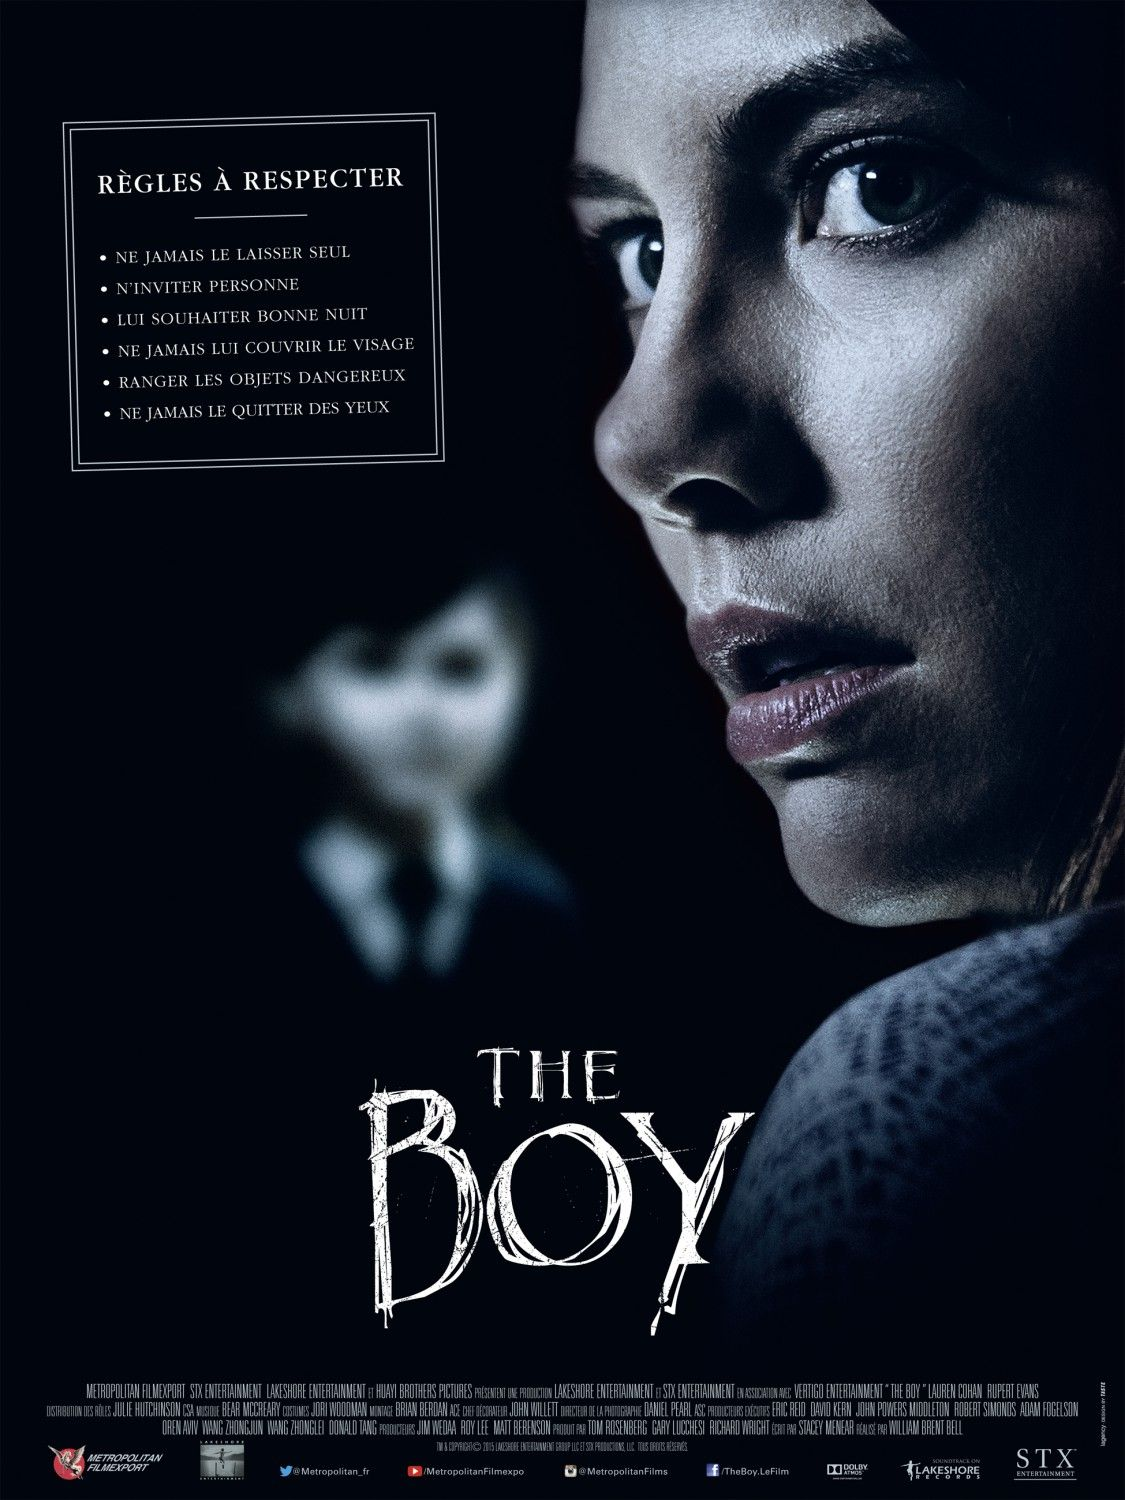 The Boy Trailer Clips Images And Poster Movies For Boys Free Movies Online Full Movies